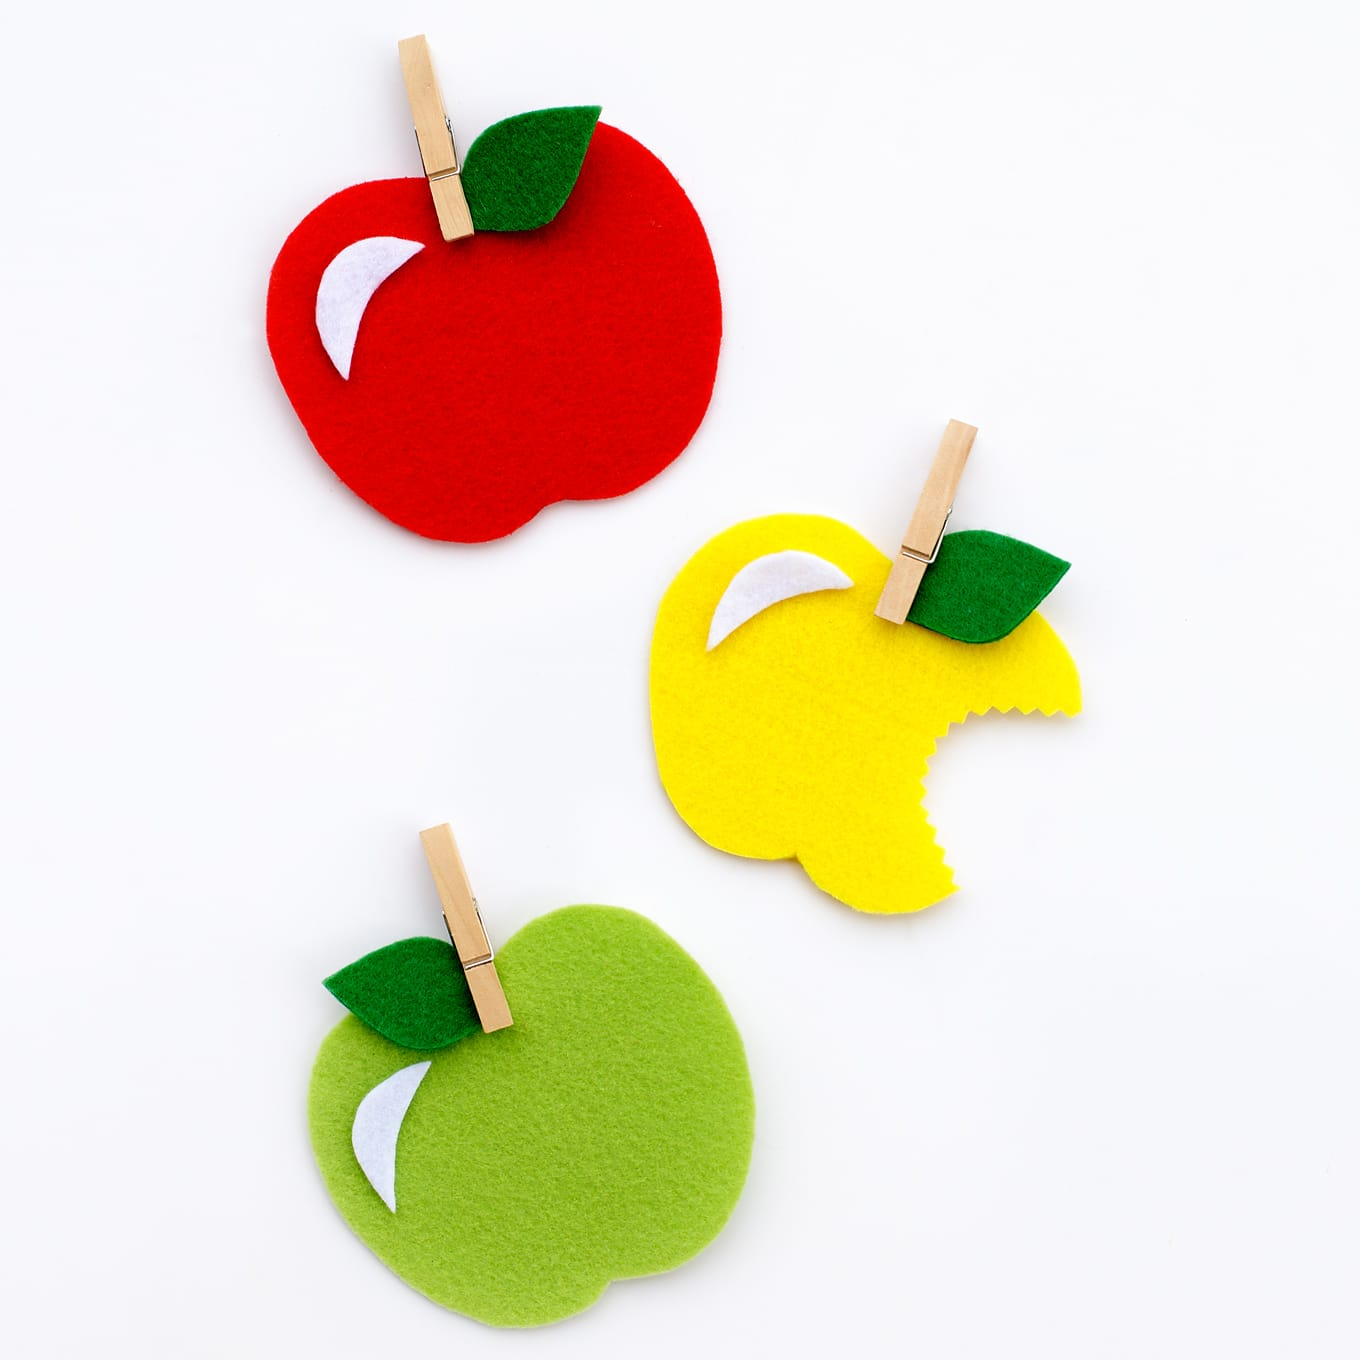 DIY colorful felt apples to use as magnets or gifts